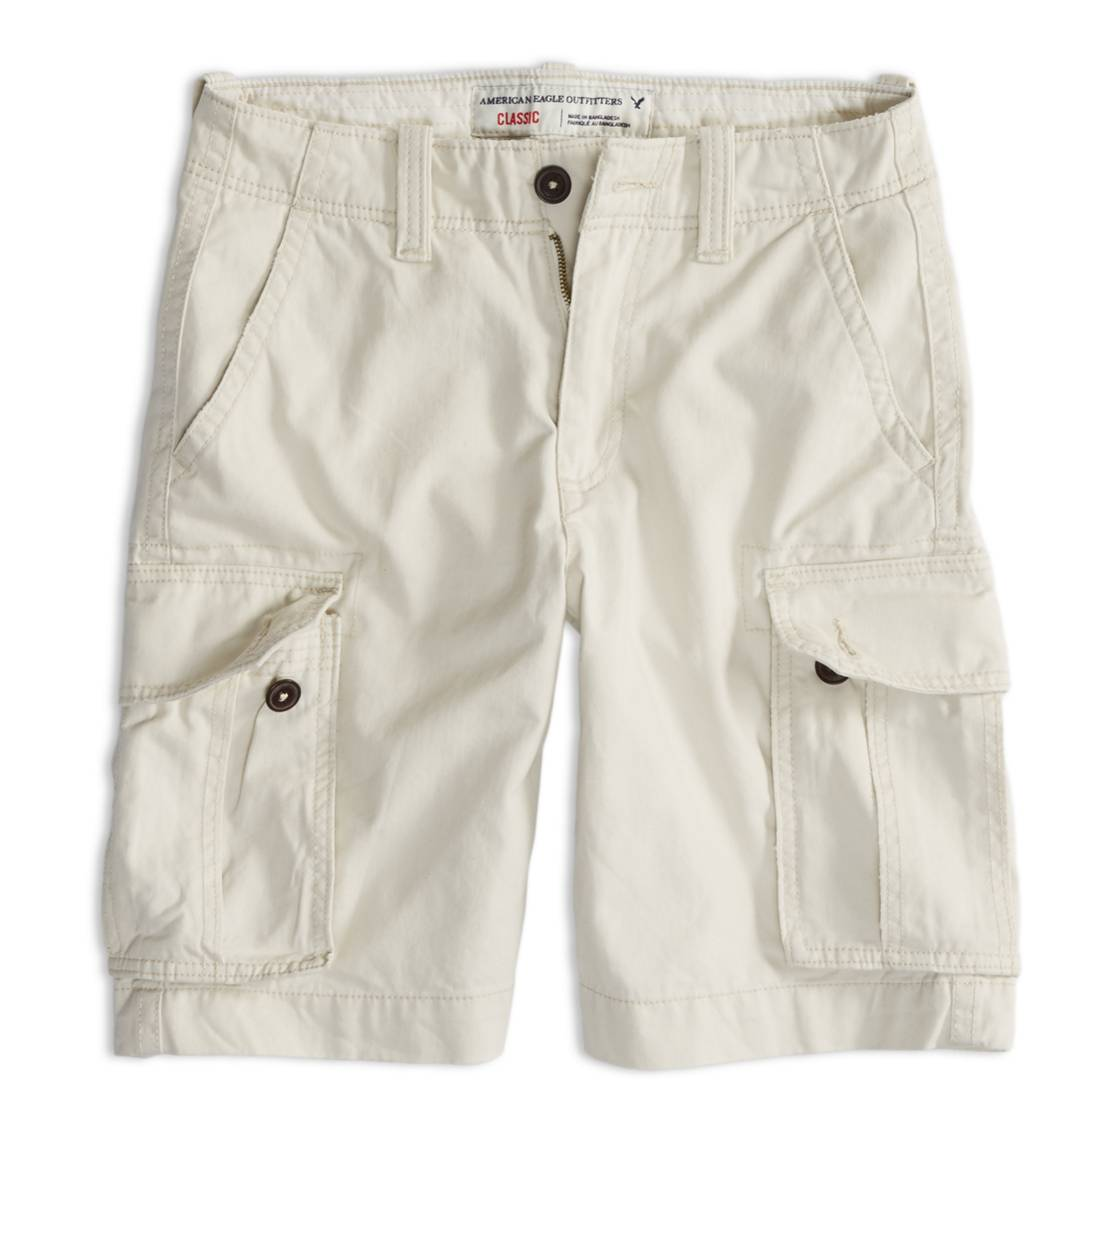 Worn Rope AEO Factory Cargo Short